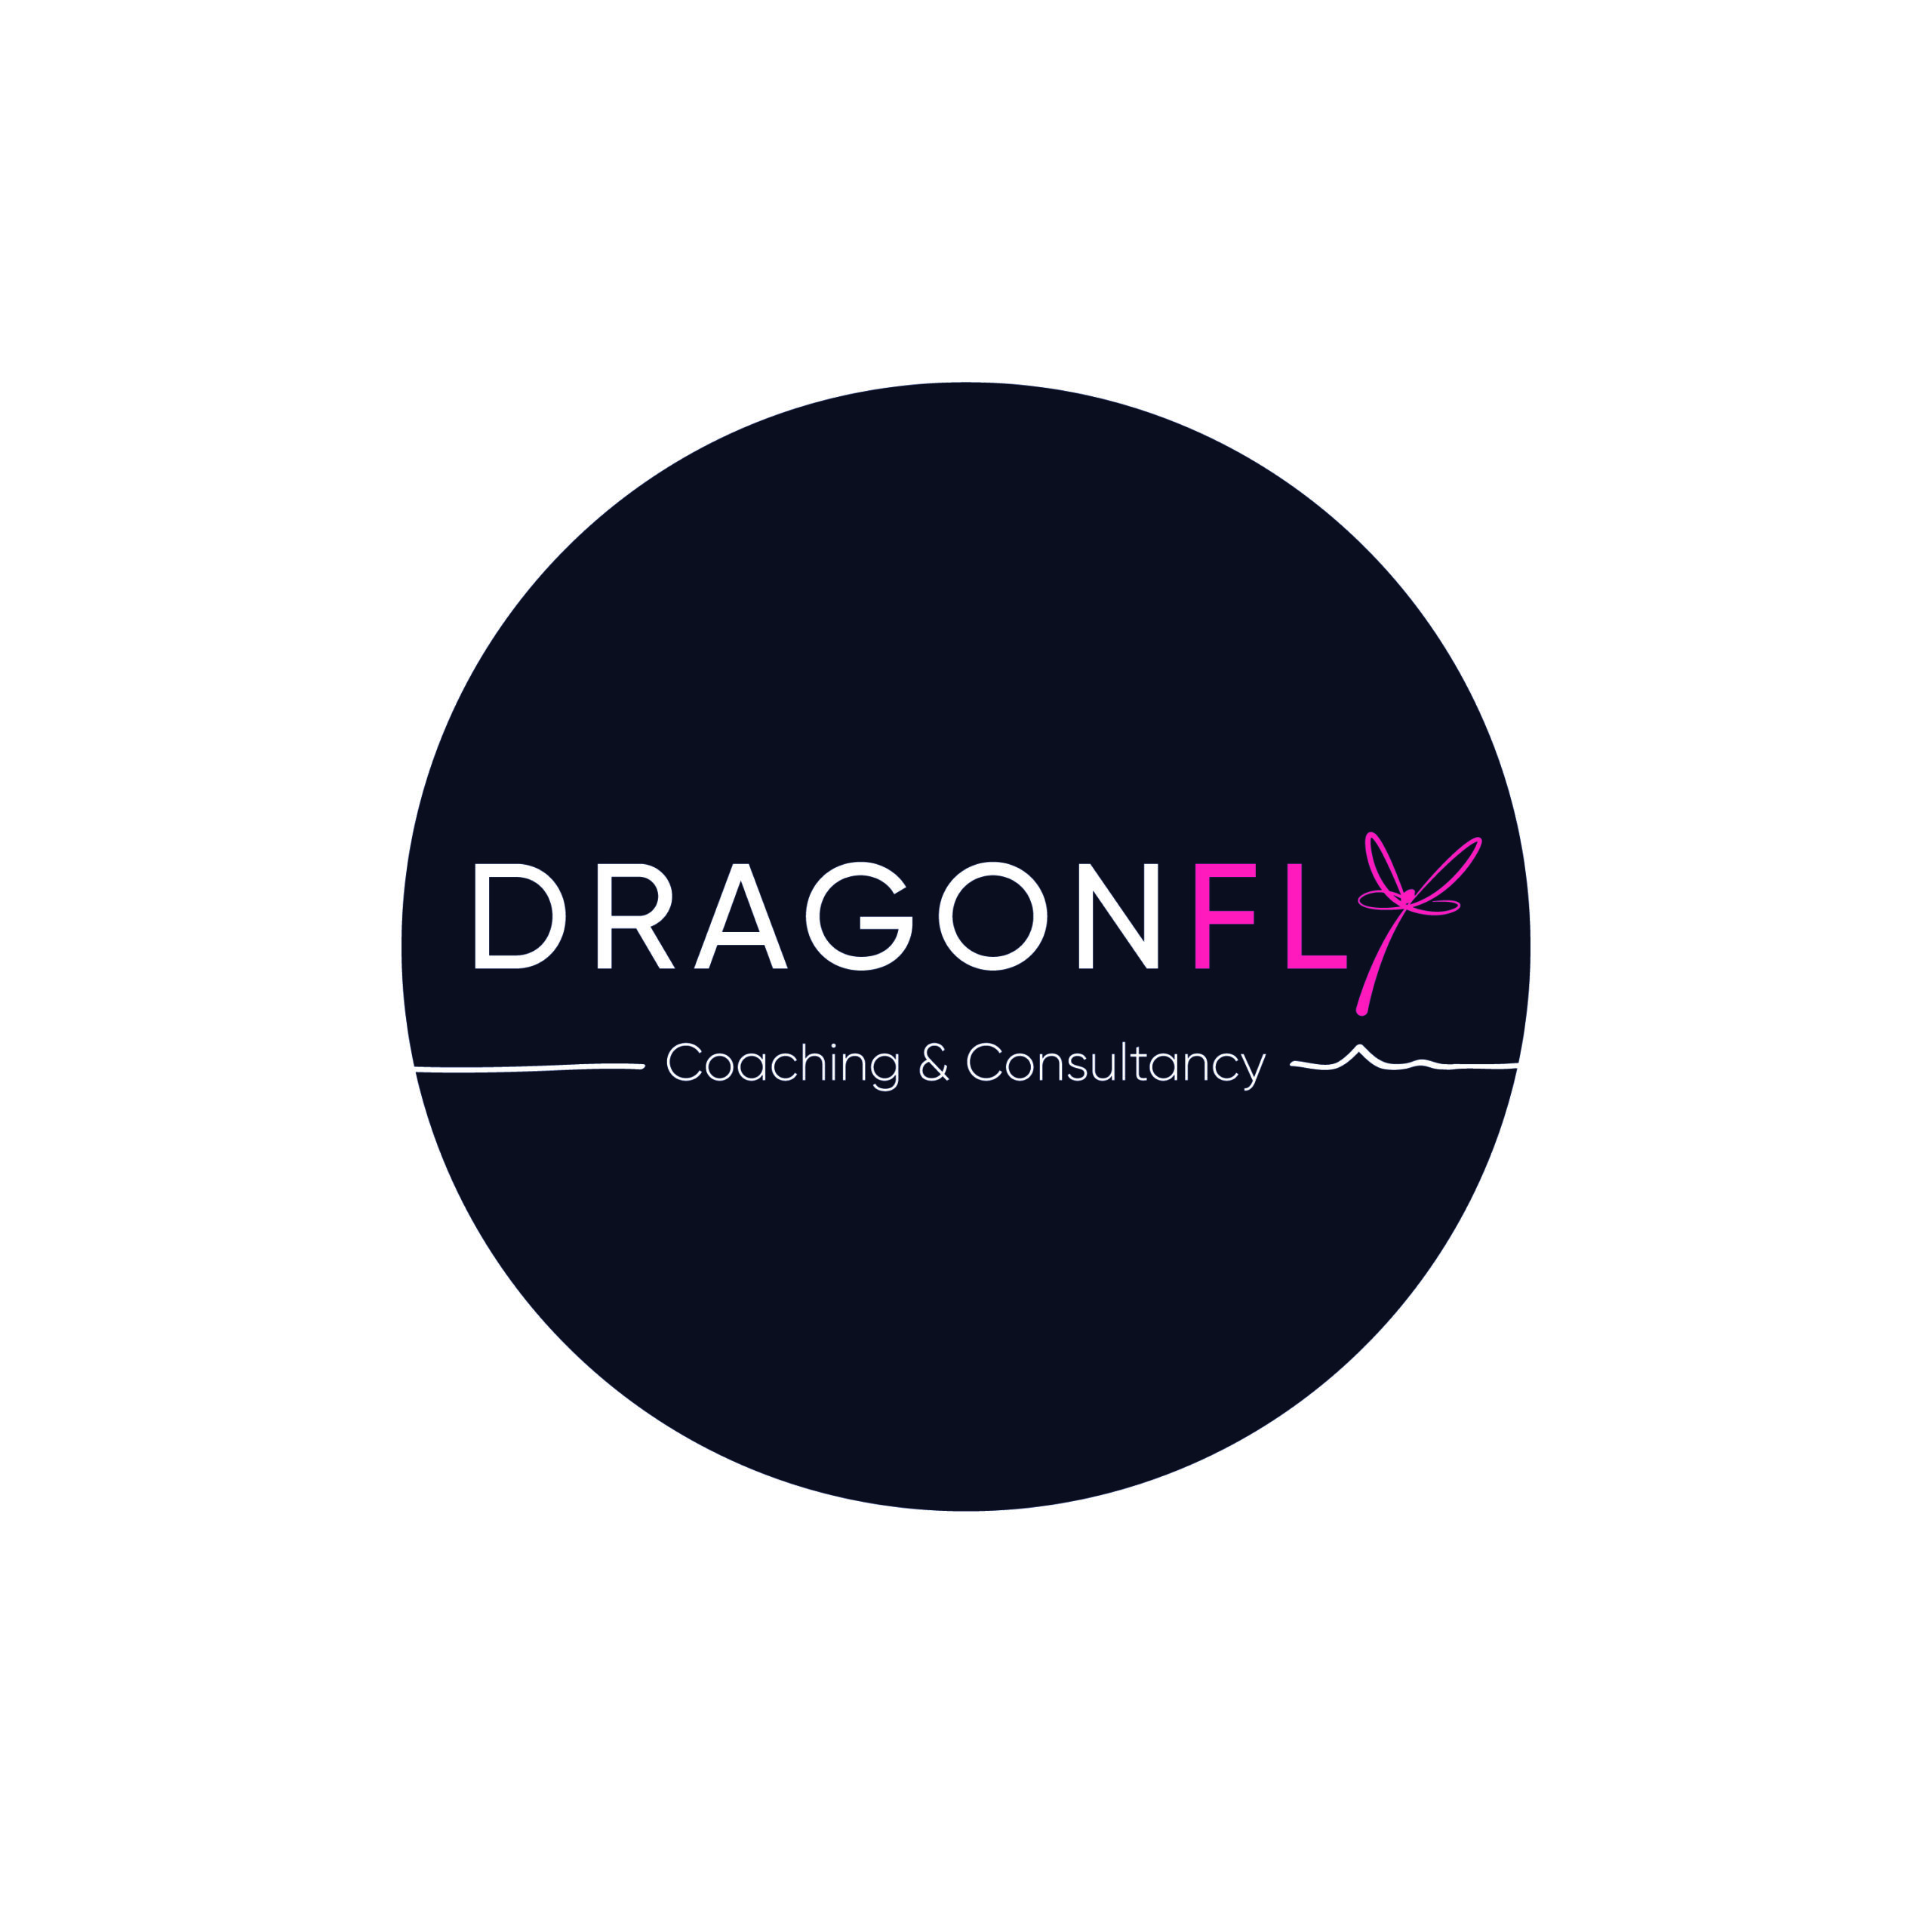 Dragonfly Coaching and Consultancy - Coaching and Mentoring